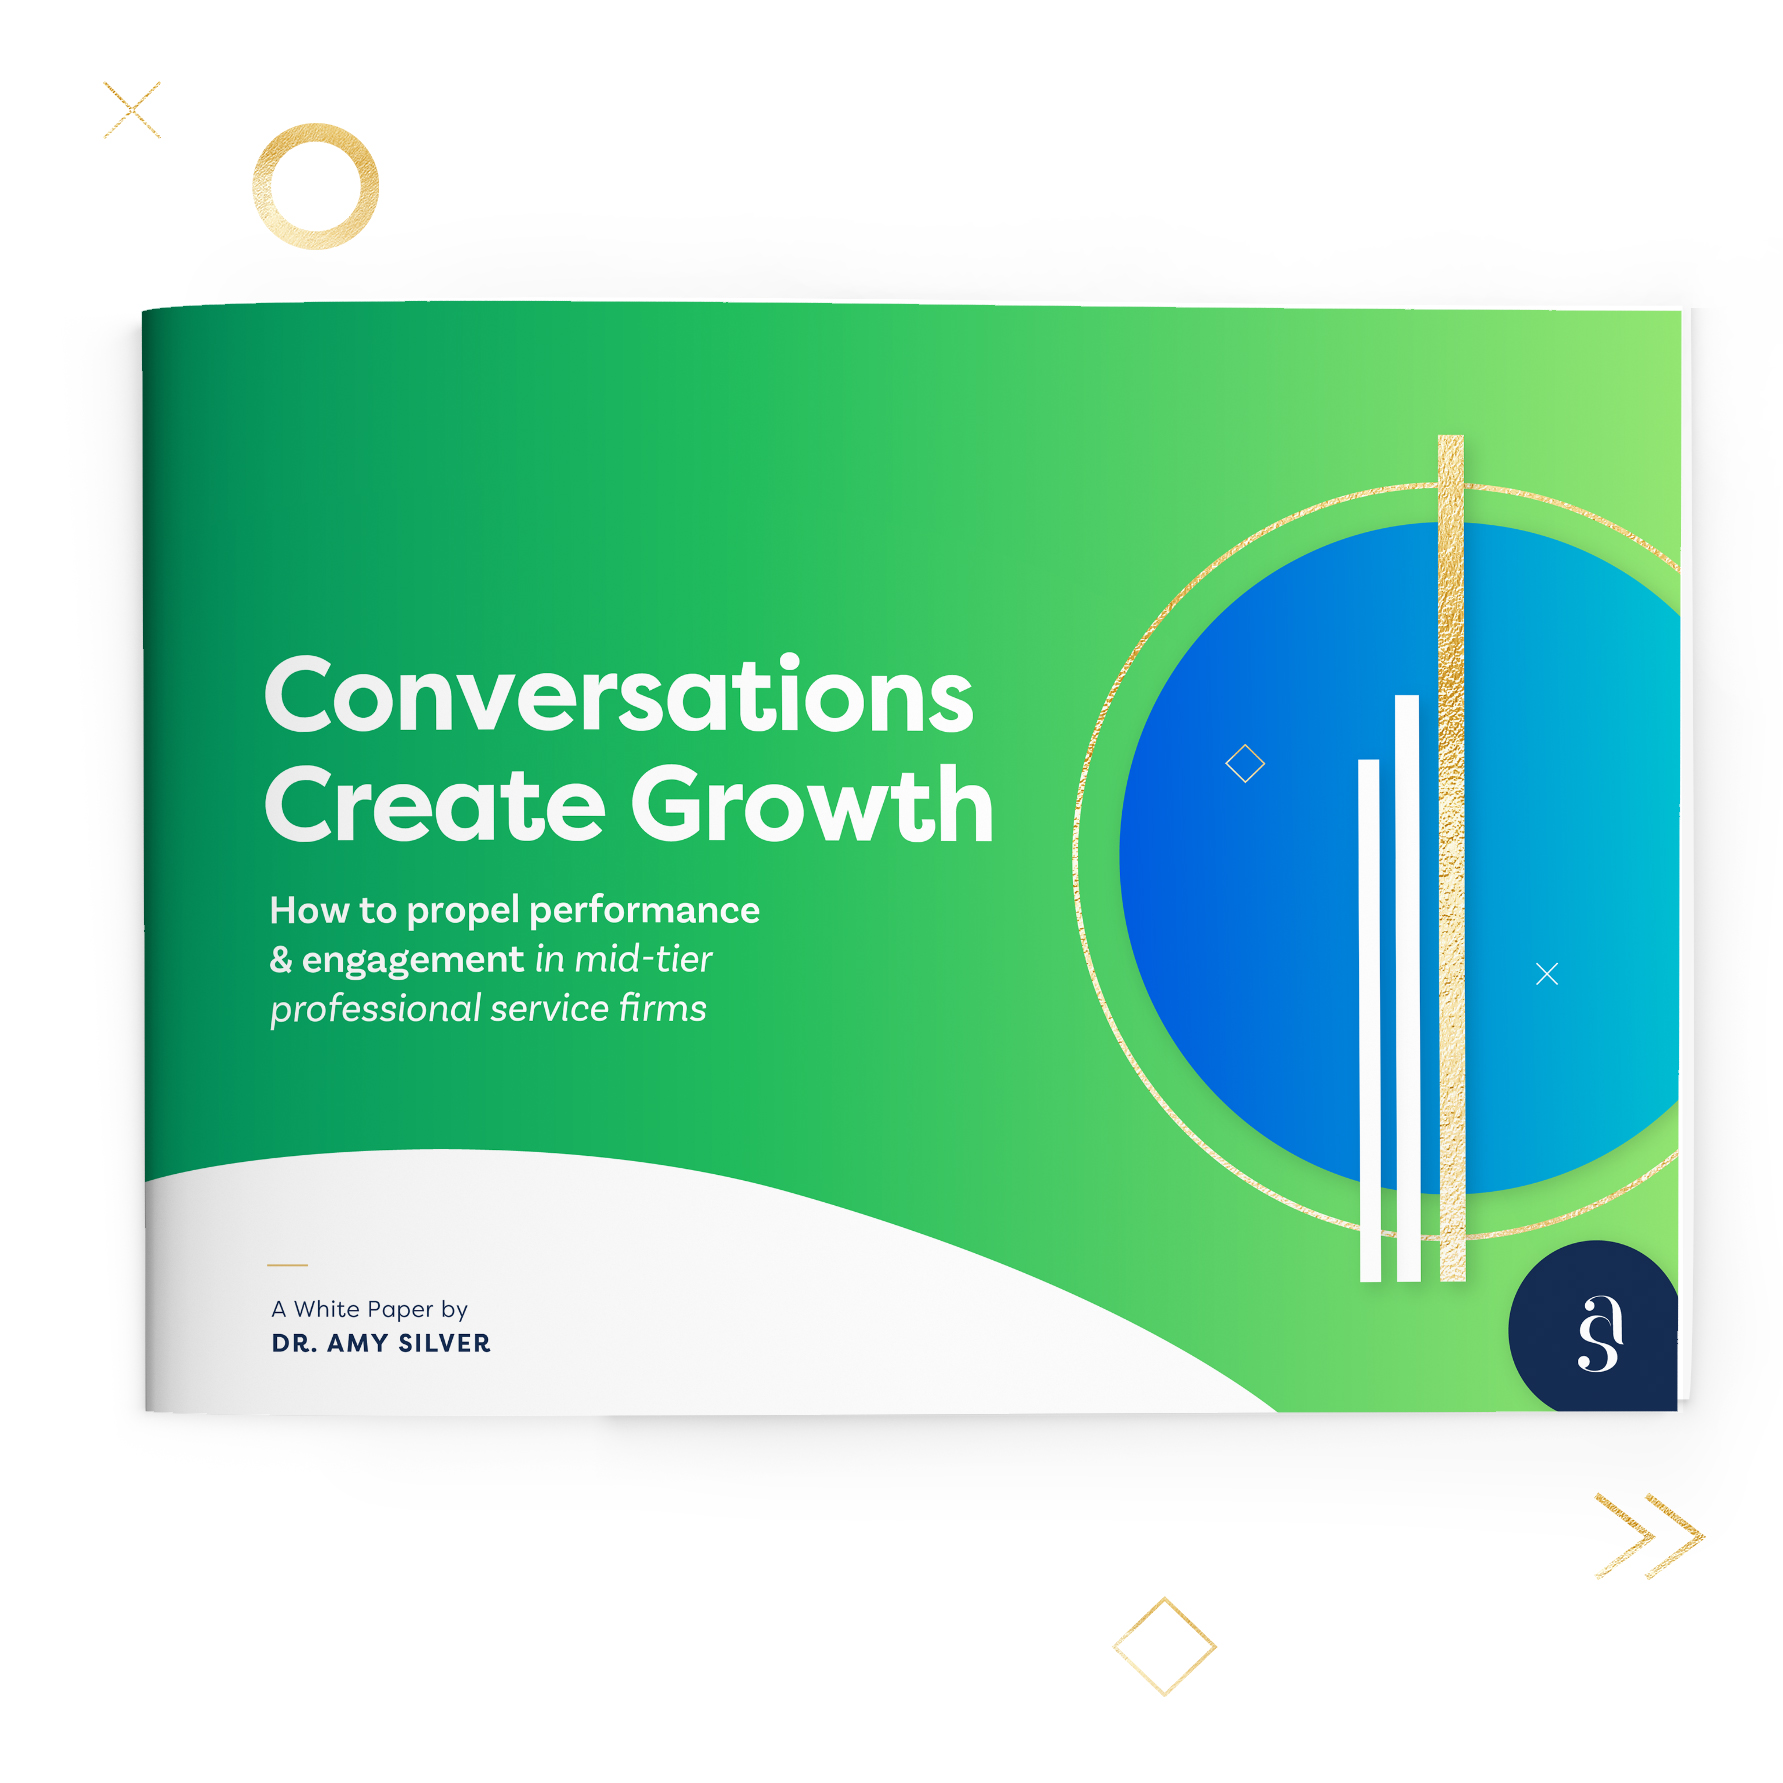 Click to download  the Dr Amy Silver's white paper:  Conversations Create Growth - How to Propel Performance & Engagement in Mid-Tier Professional Service Firms